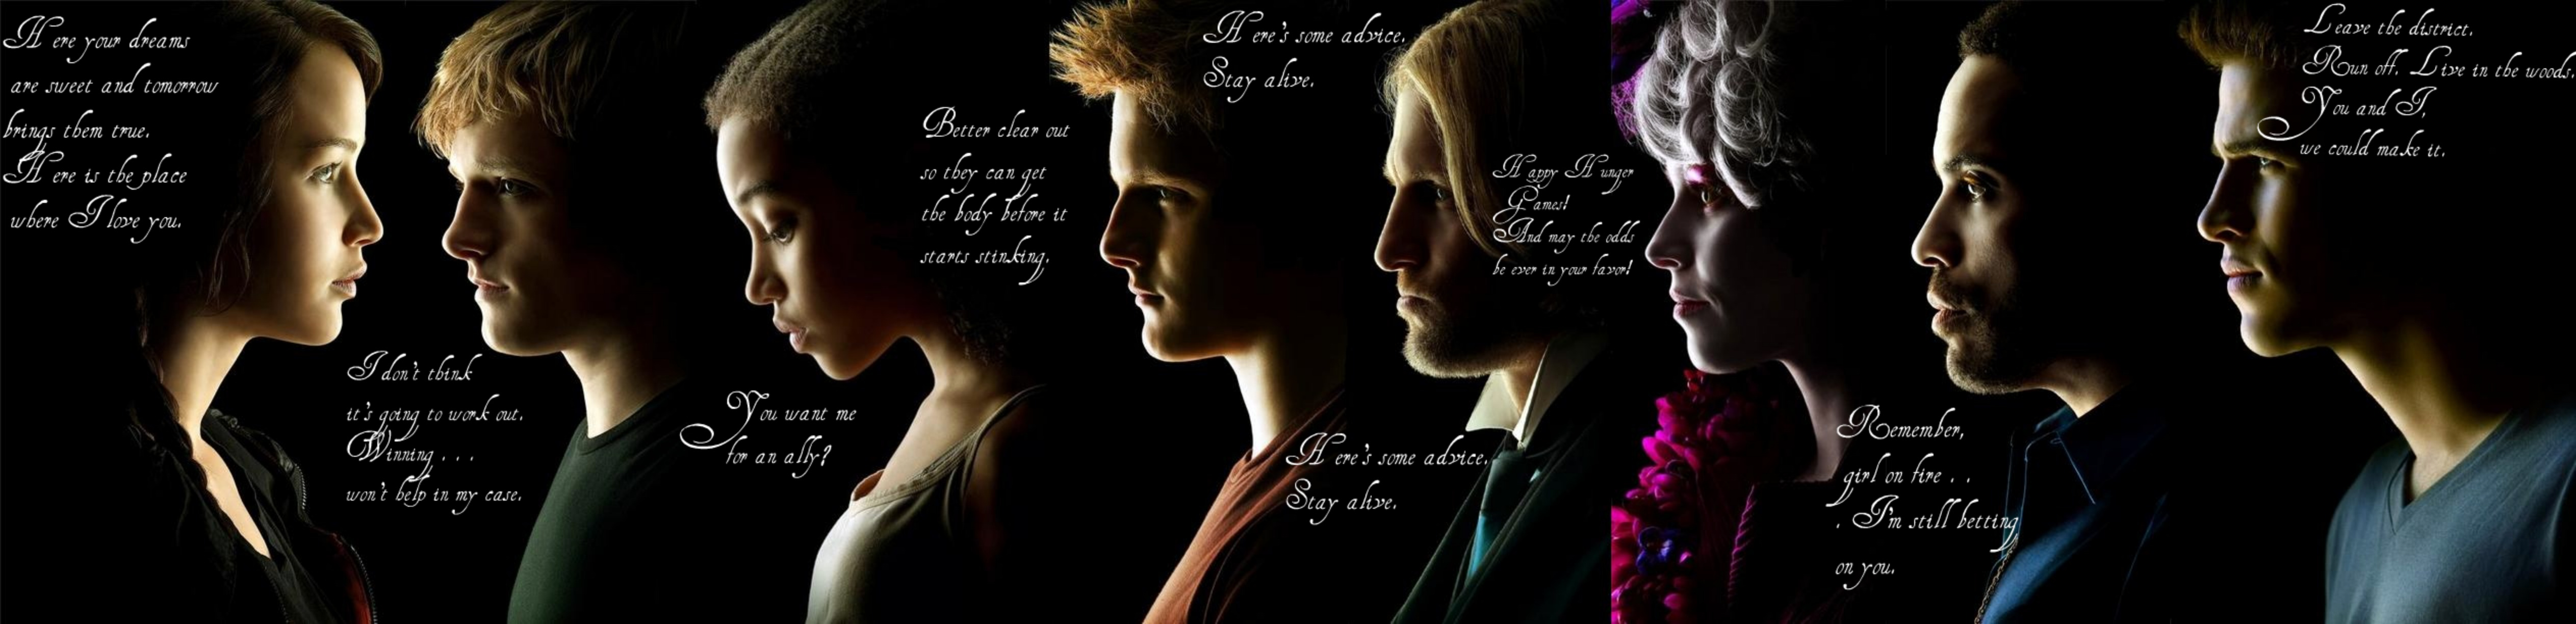 Quotes About Hunger The Hunger Games Quotesseriouslysyked On Deviantart